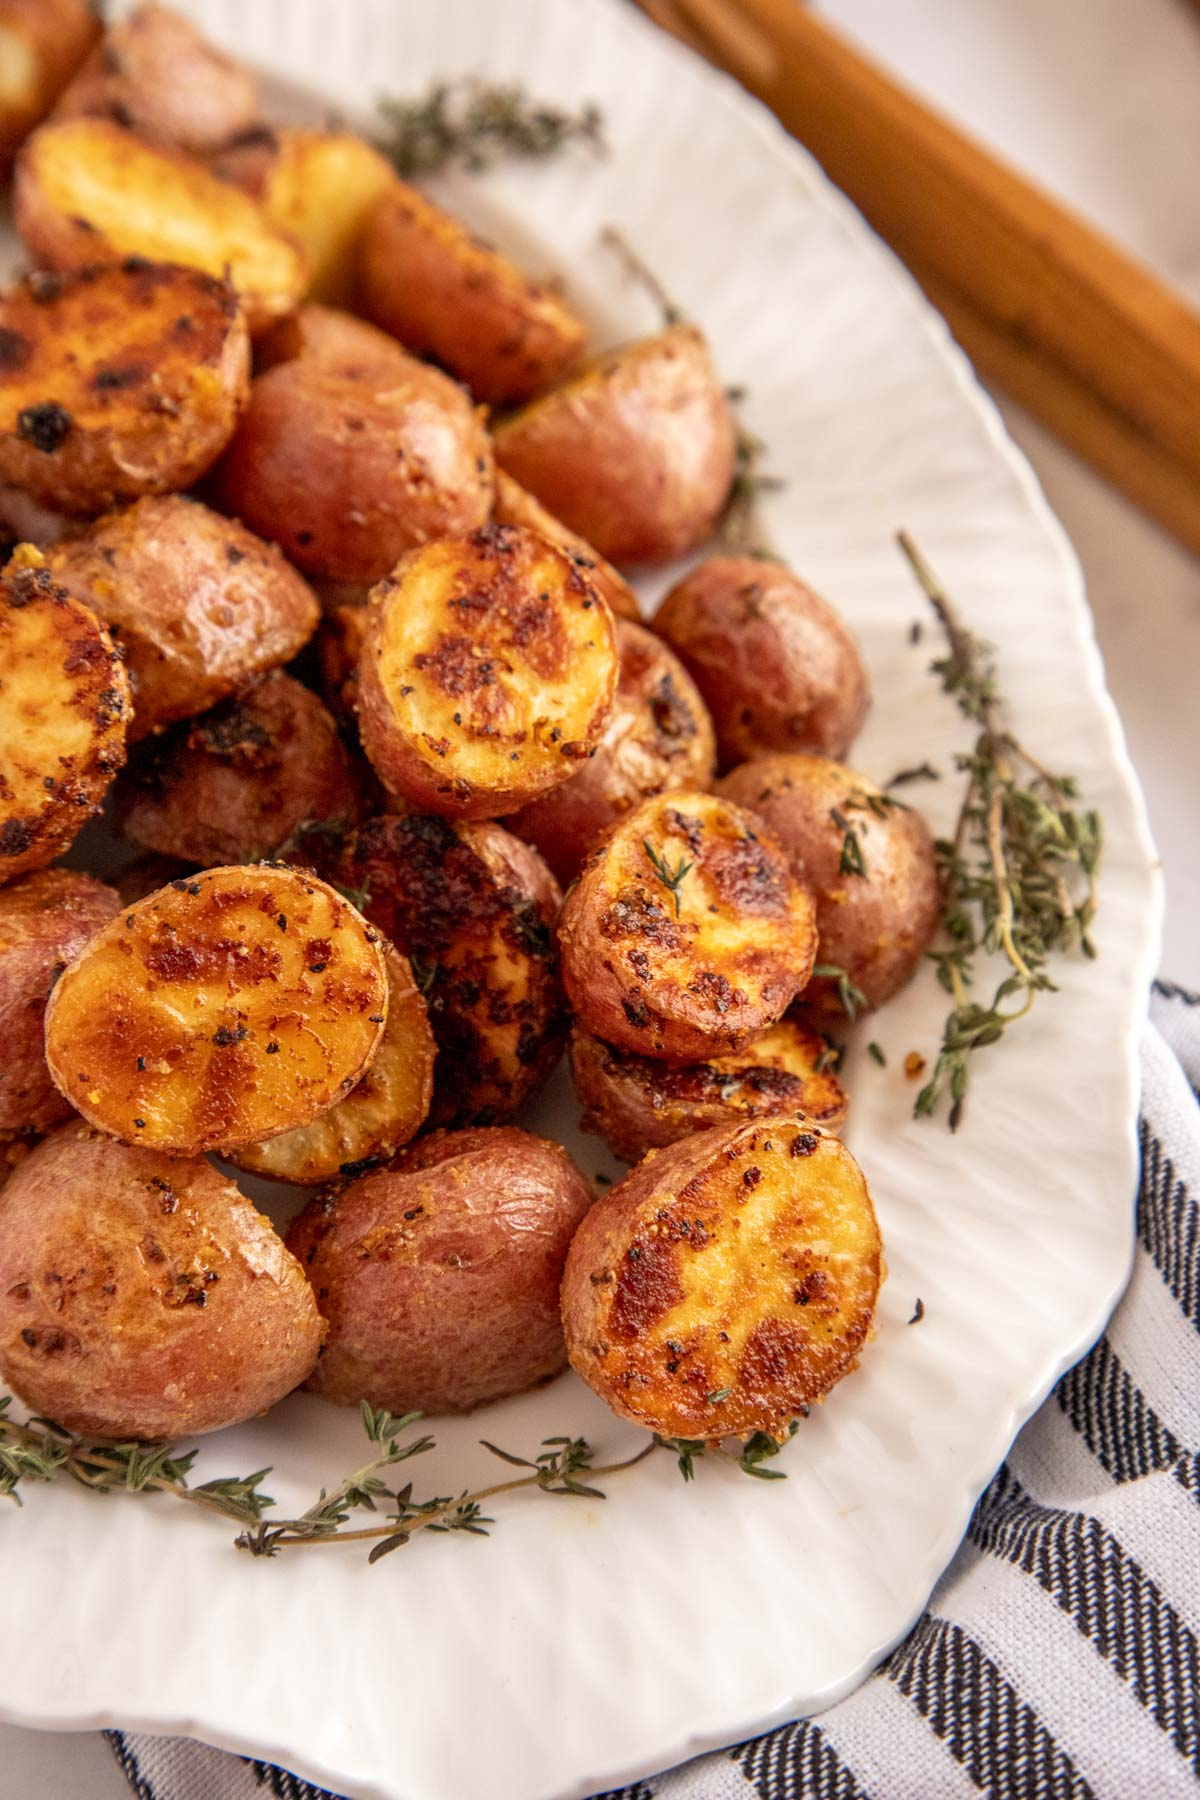 roasted baby potatoes on a white platter with a striped napkin